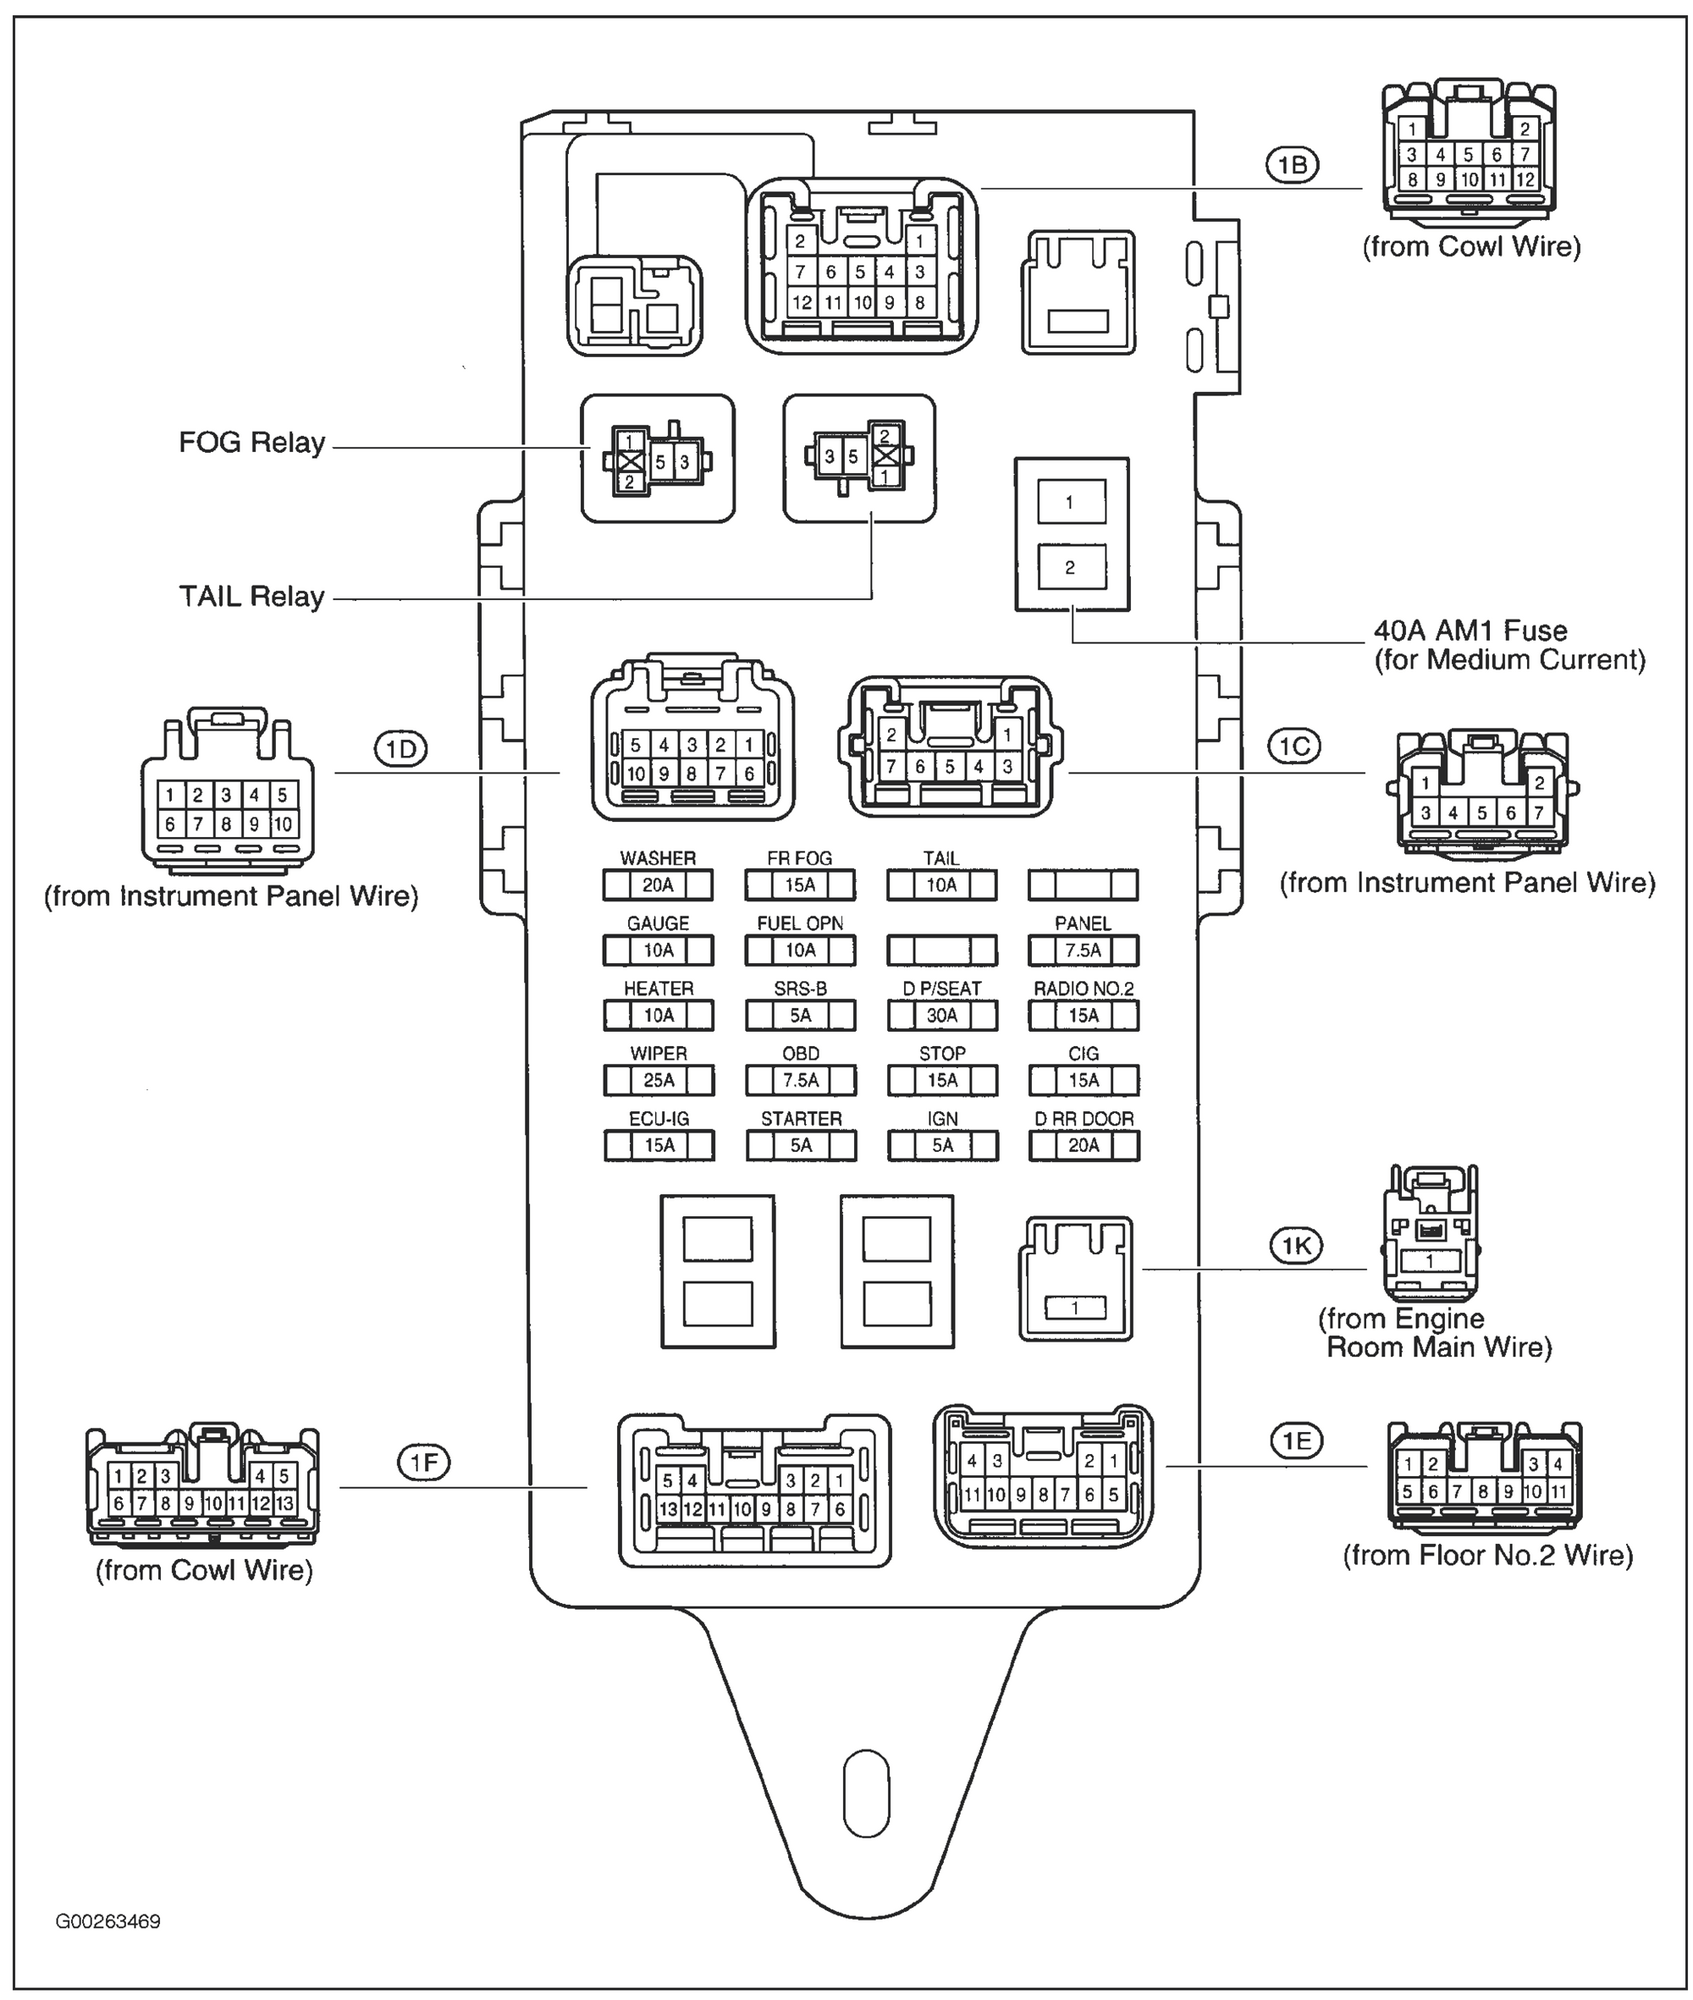 hight resolution of 2001 lexus is300 fuse diagram wiring diagram meta lexus es300 headlight fuse box